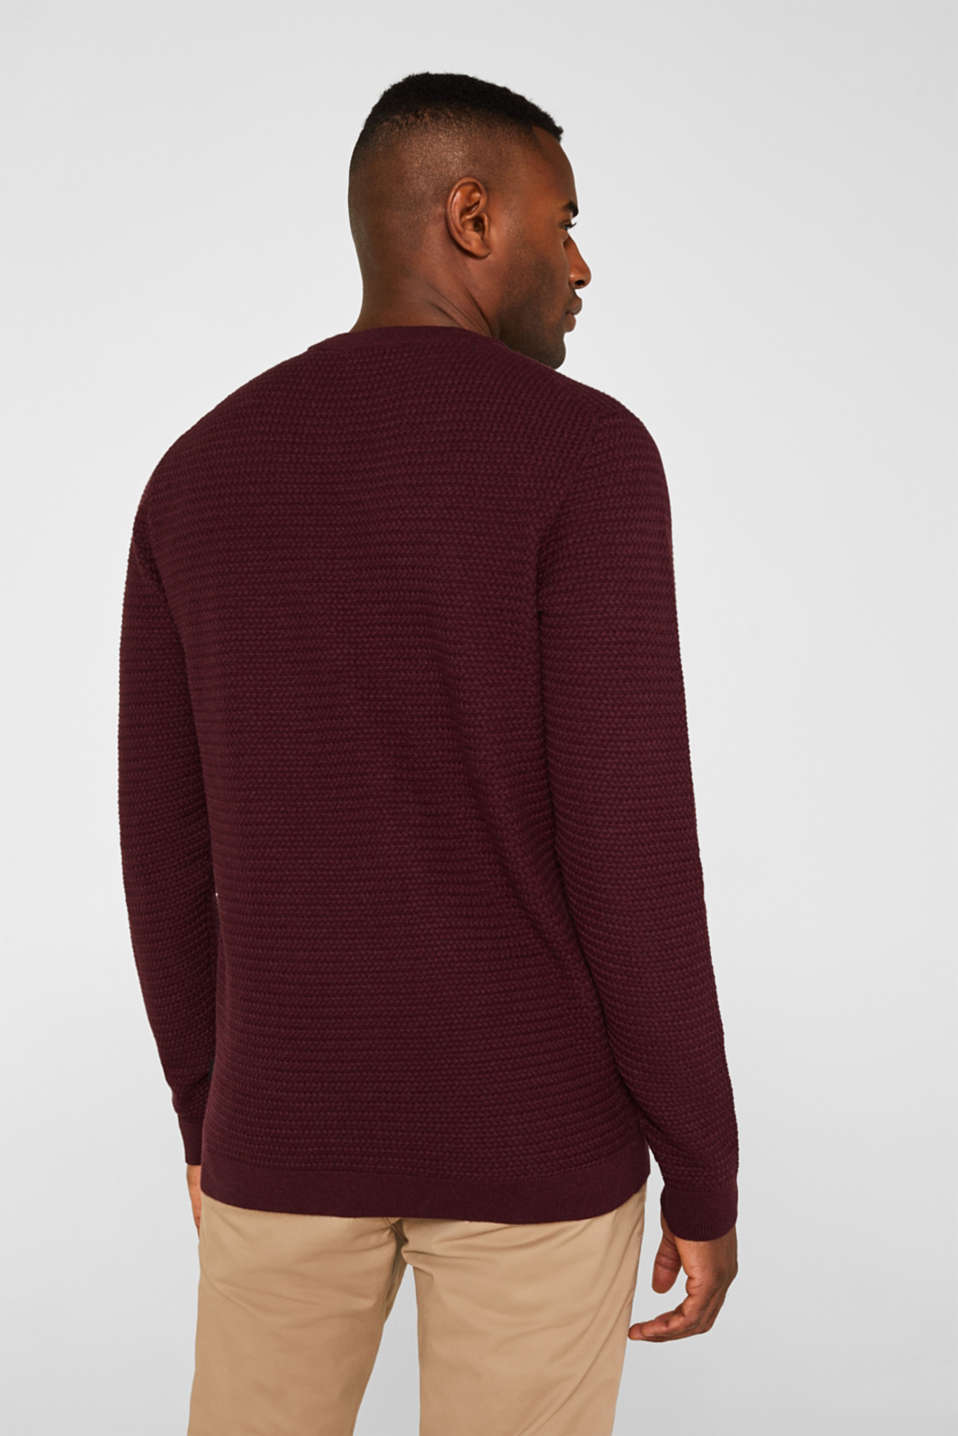 Textured jumper made of 100% cotton, BORDEAUX RED 5, detail image number 3